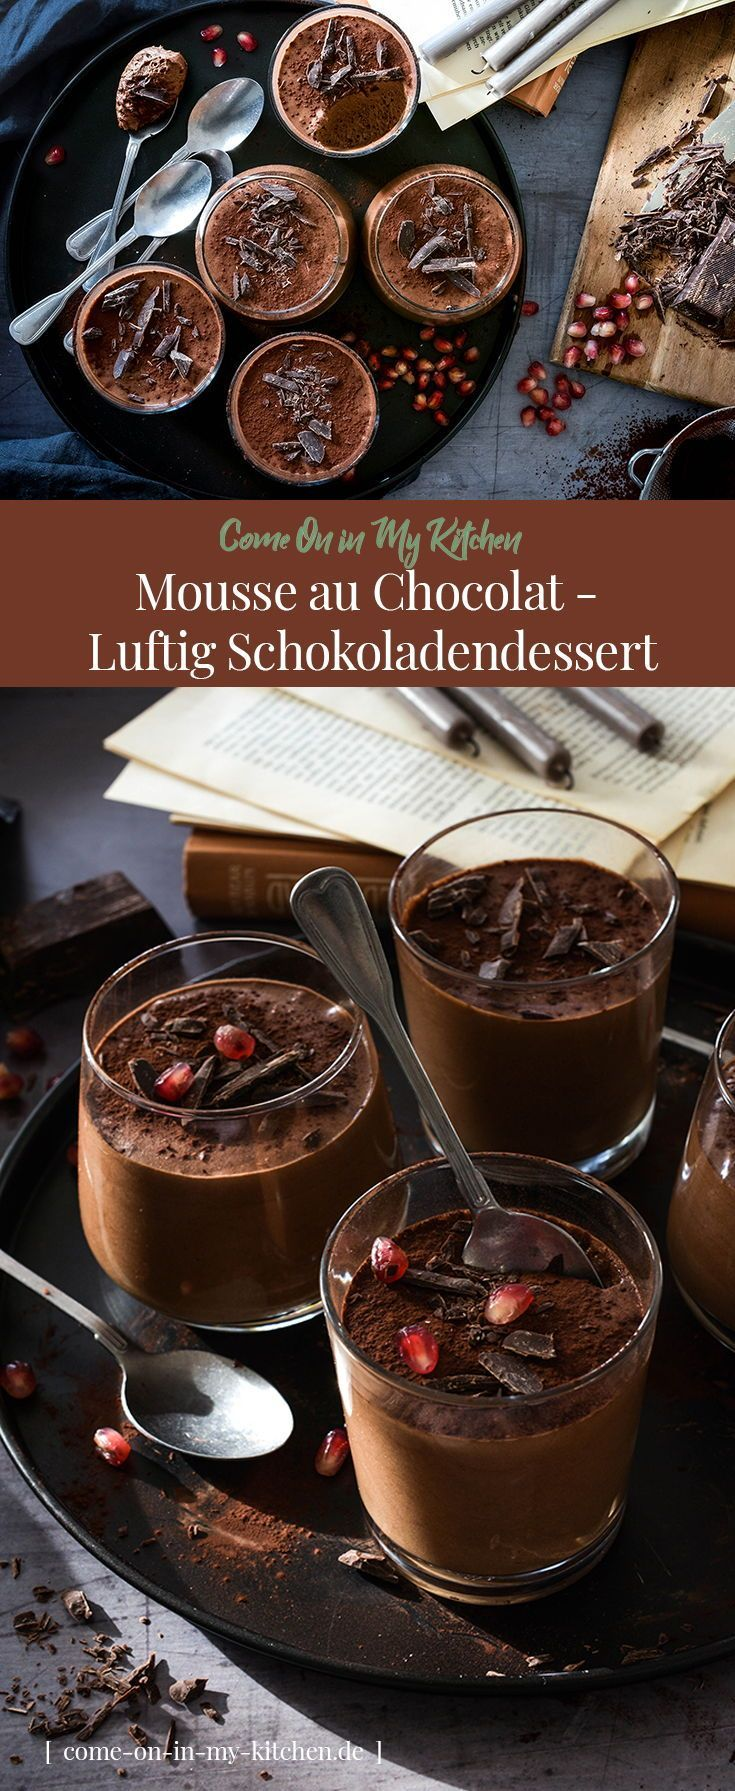 Mousse au Chocolat - Luftiges Schokoladendessert - Home and Herbs